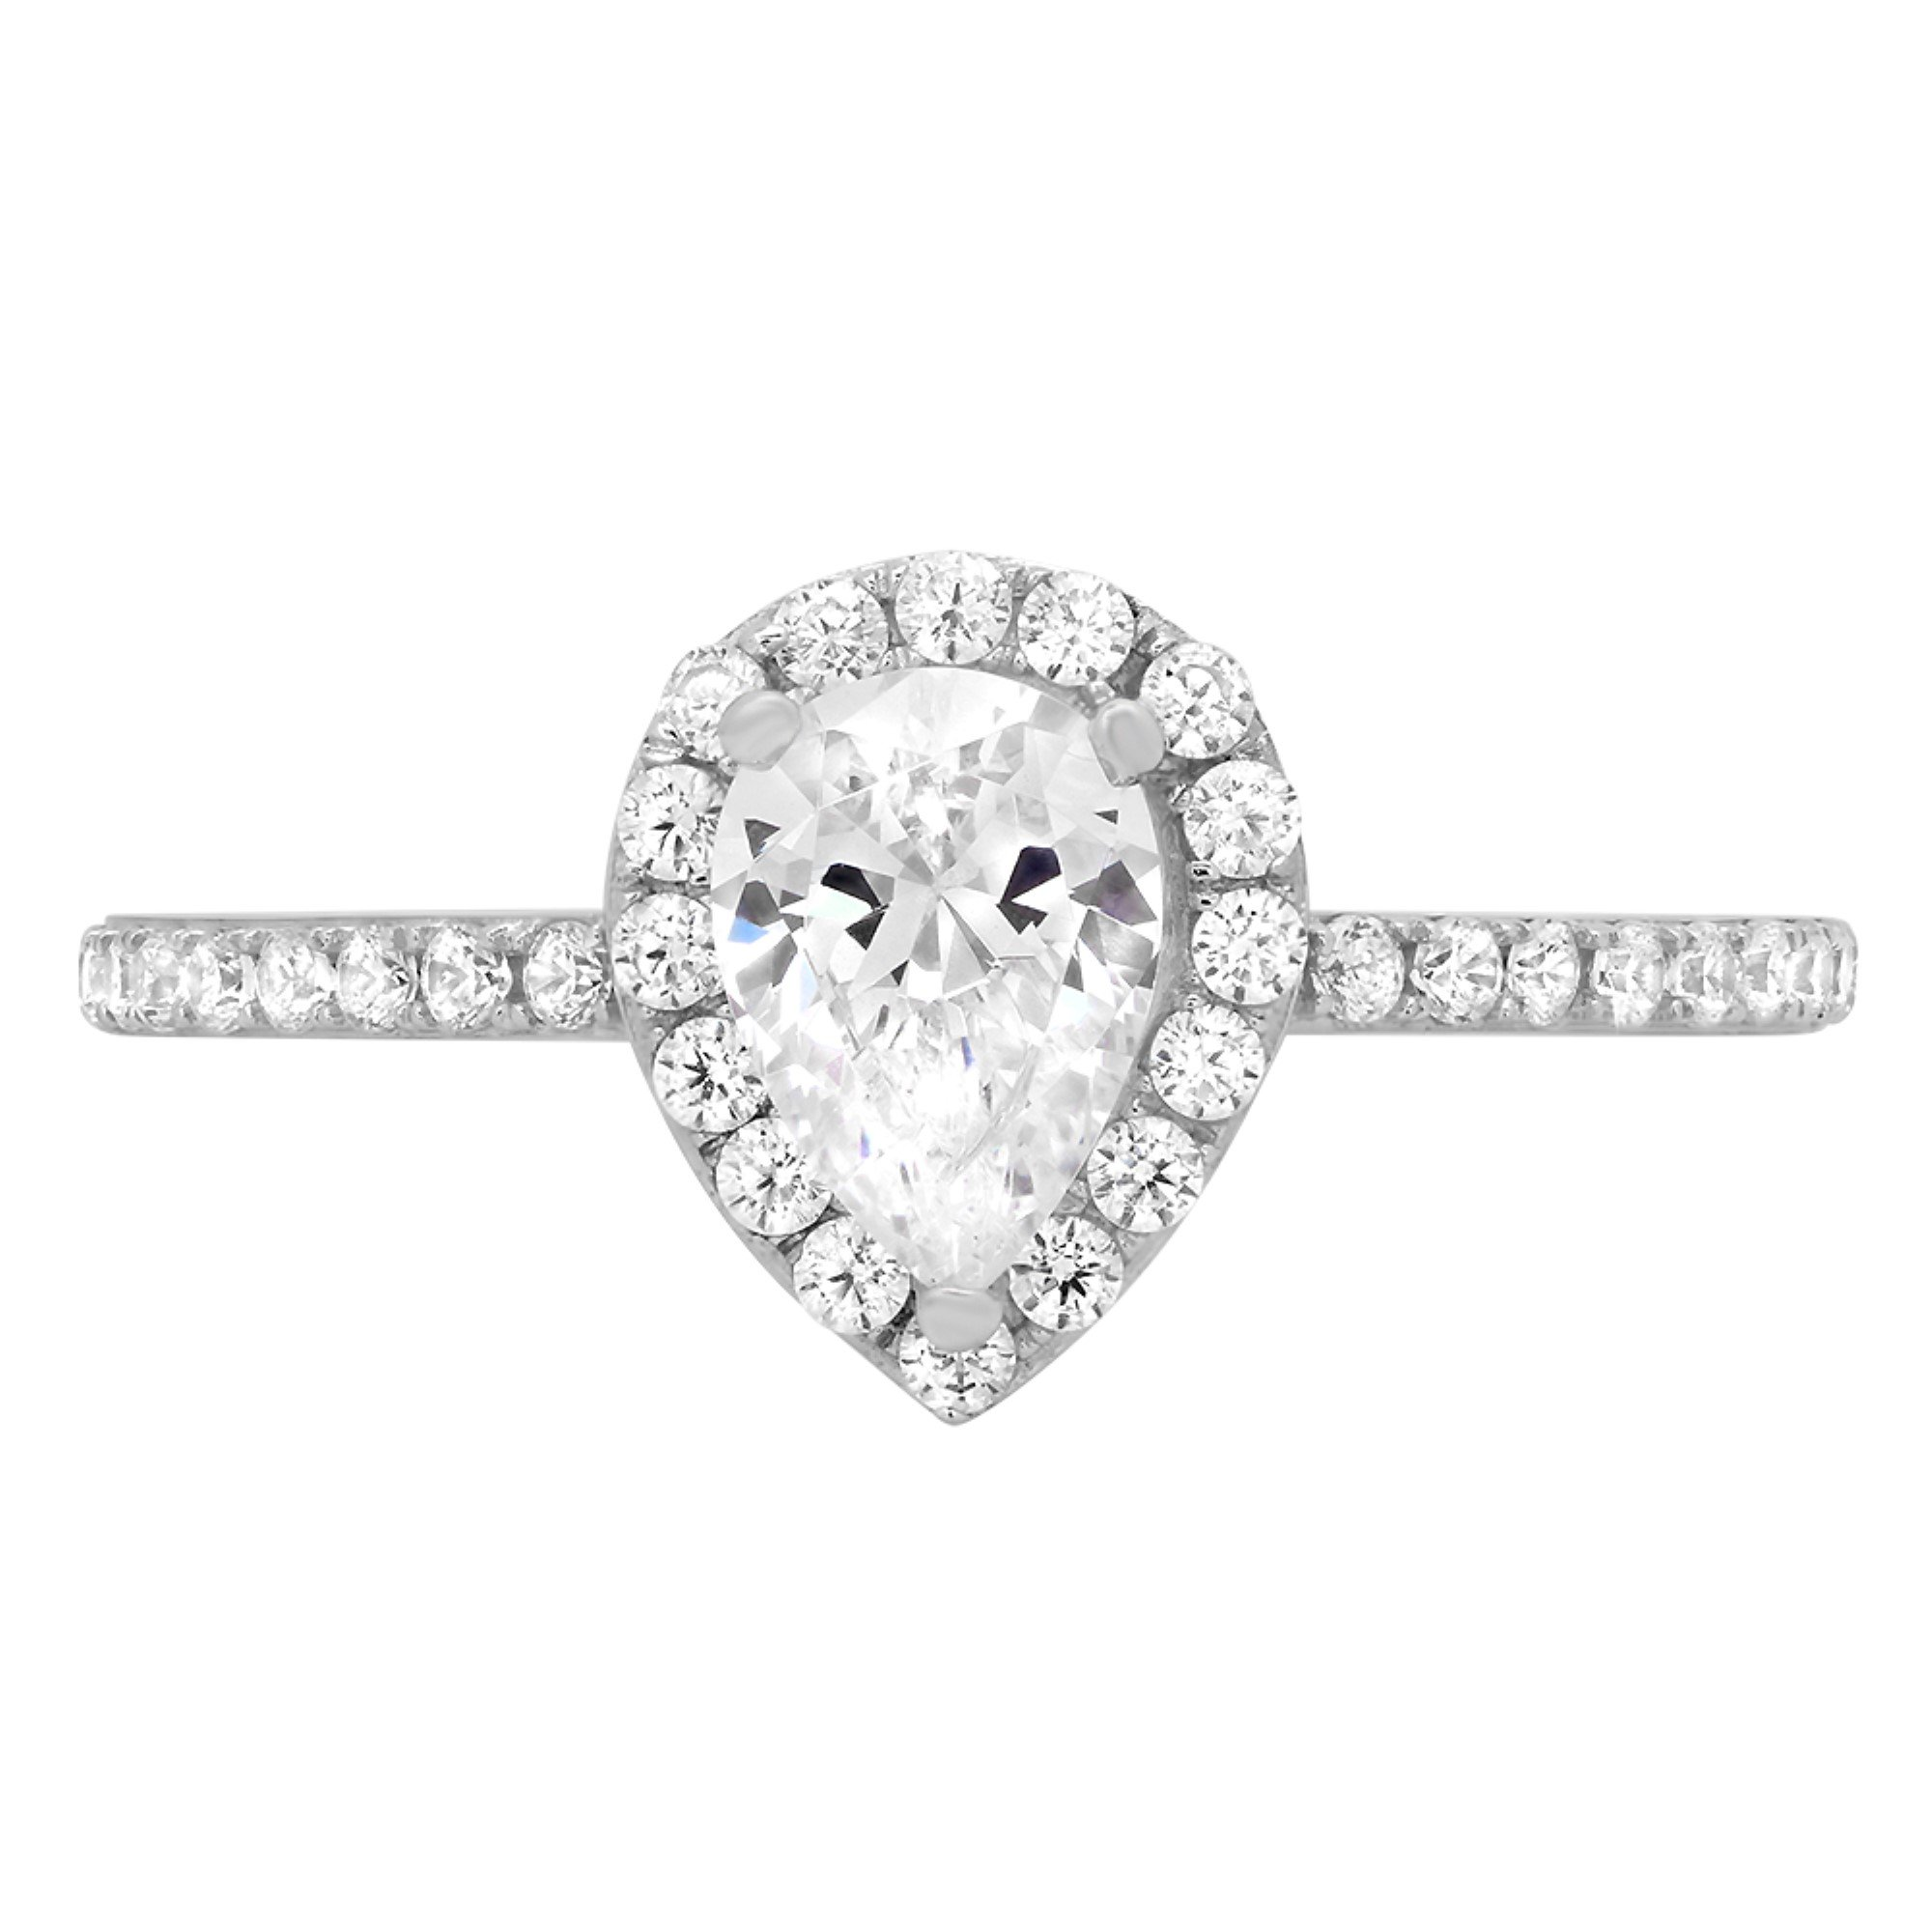 1.42ct Brilliant Pear Cut Halo Wedding Anniversary Promise Engagement Statement Bridal Ring 14k White Gold, 5